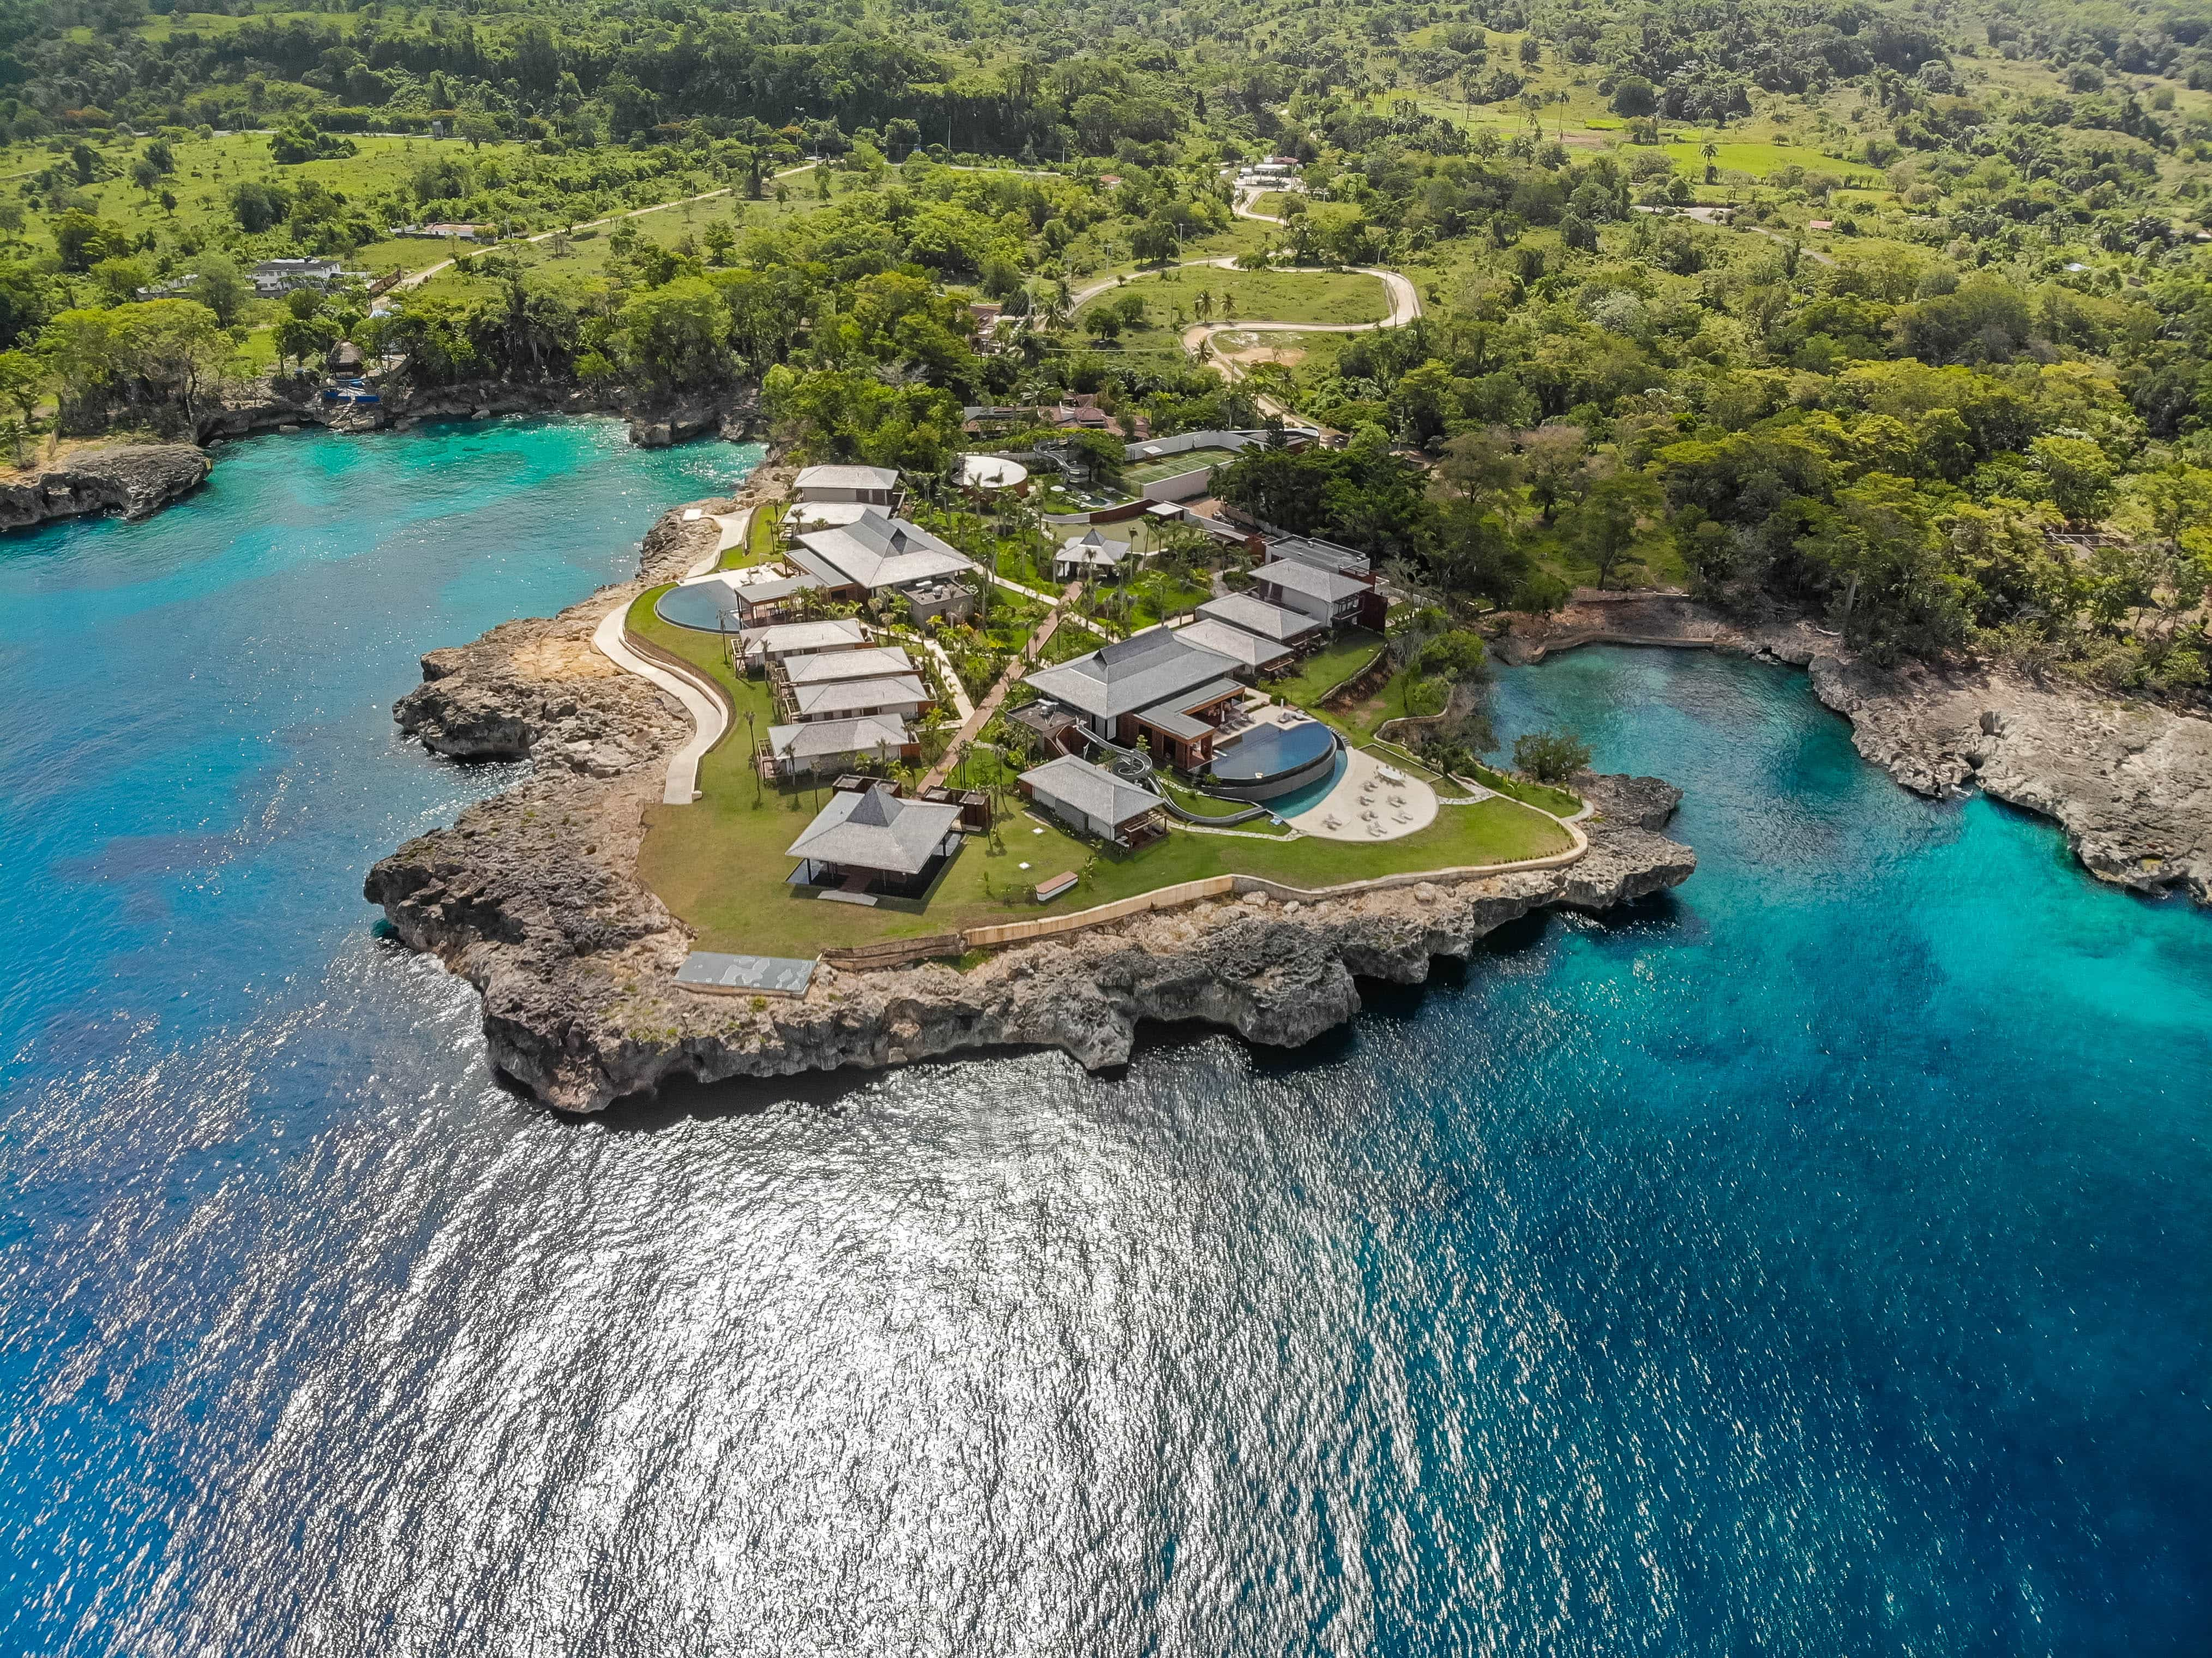 Location is everything and Ani Villas has a location better than most on its own secluded peninsula jutting into Dominican blue.